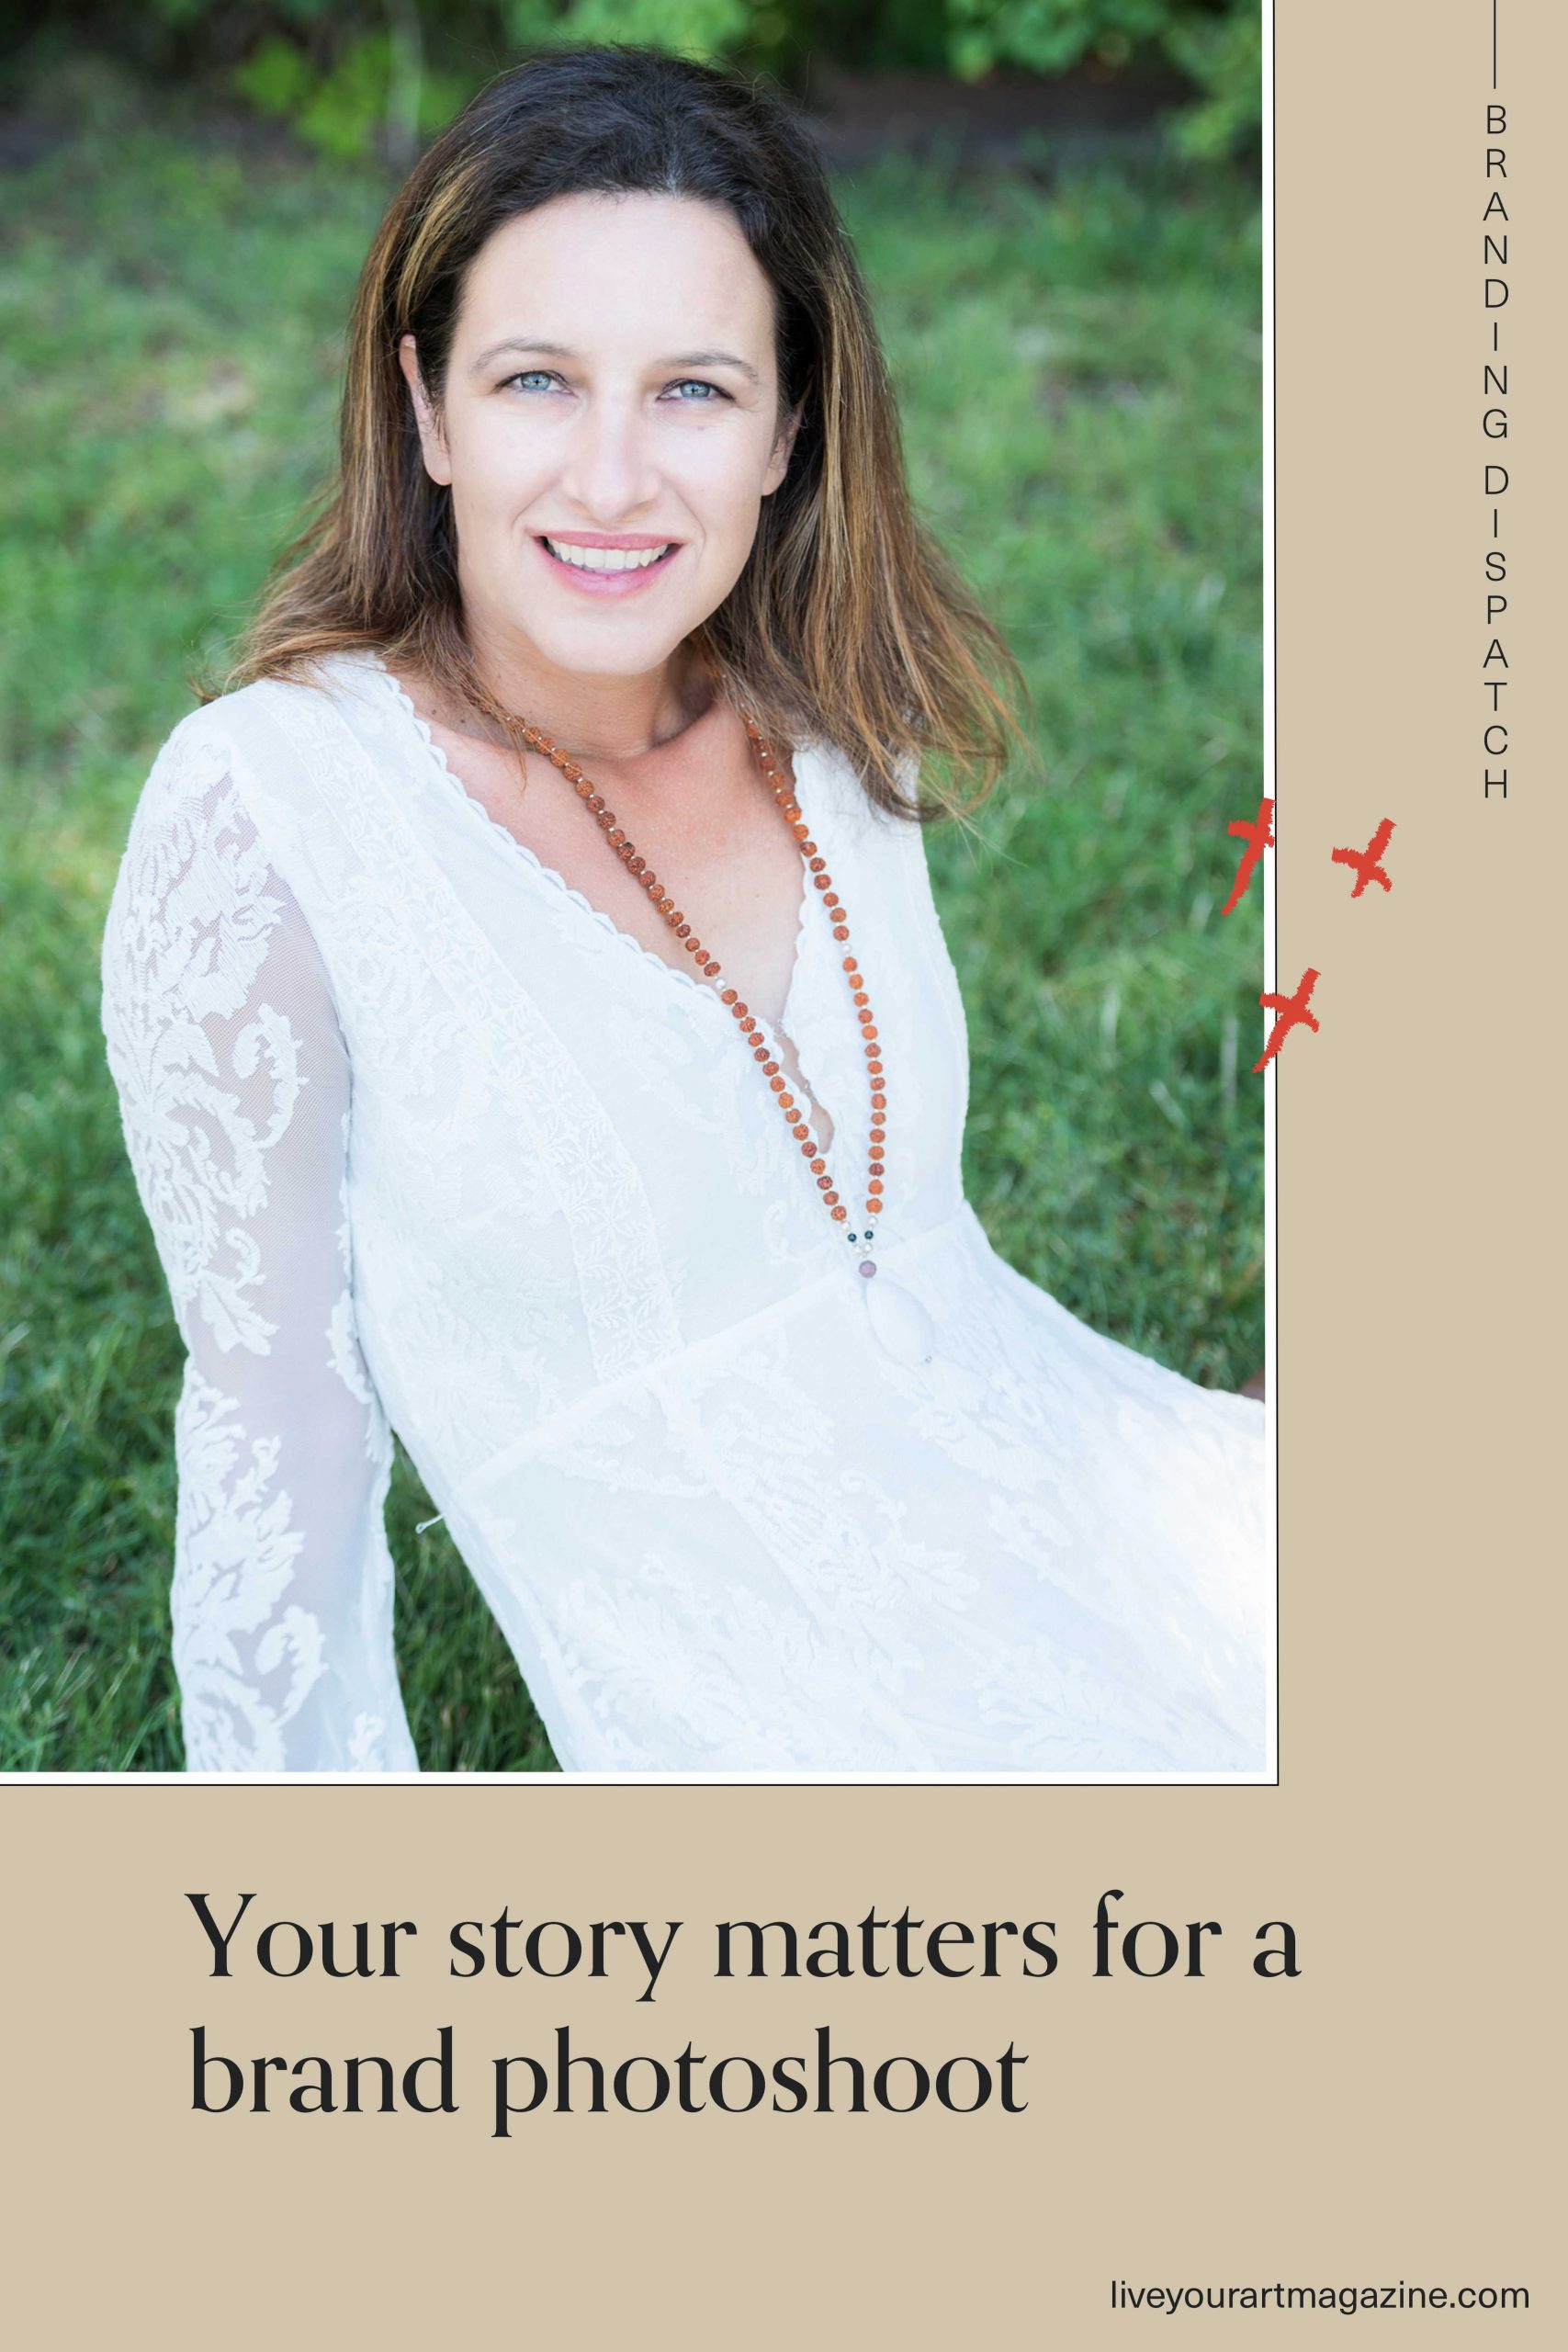 Your story matters for a brand photoshoot